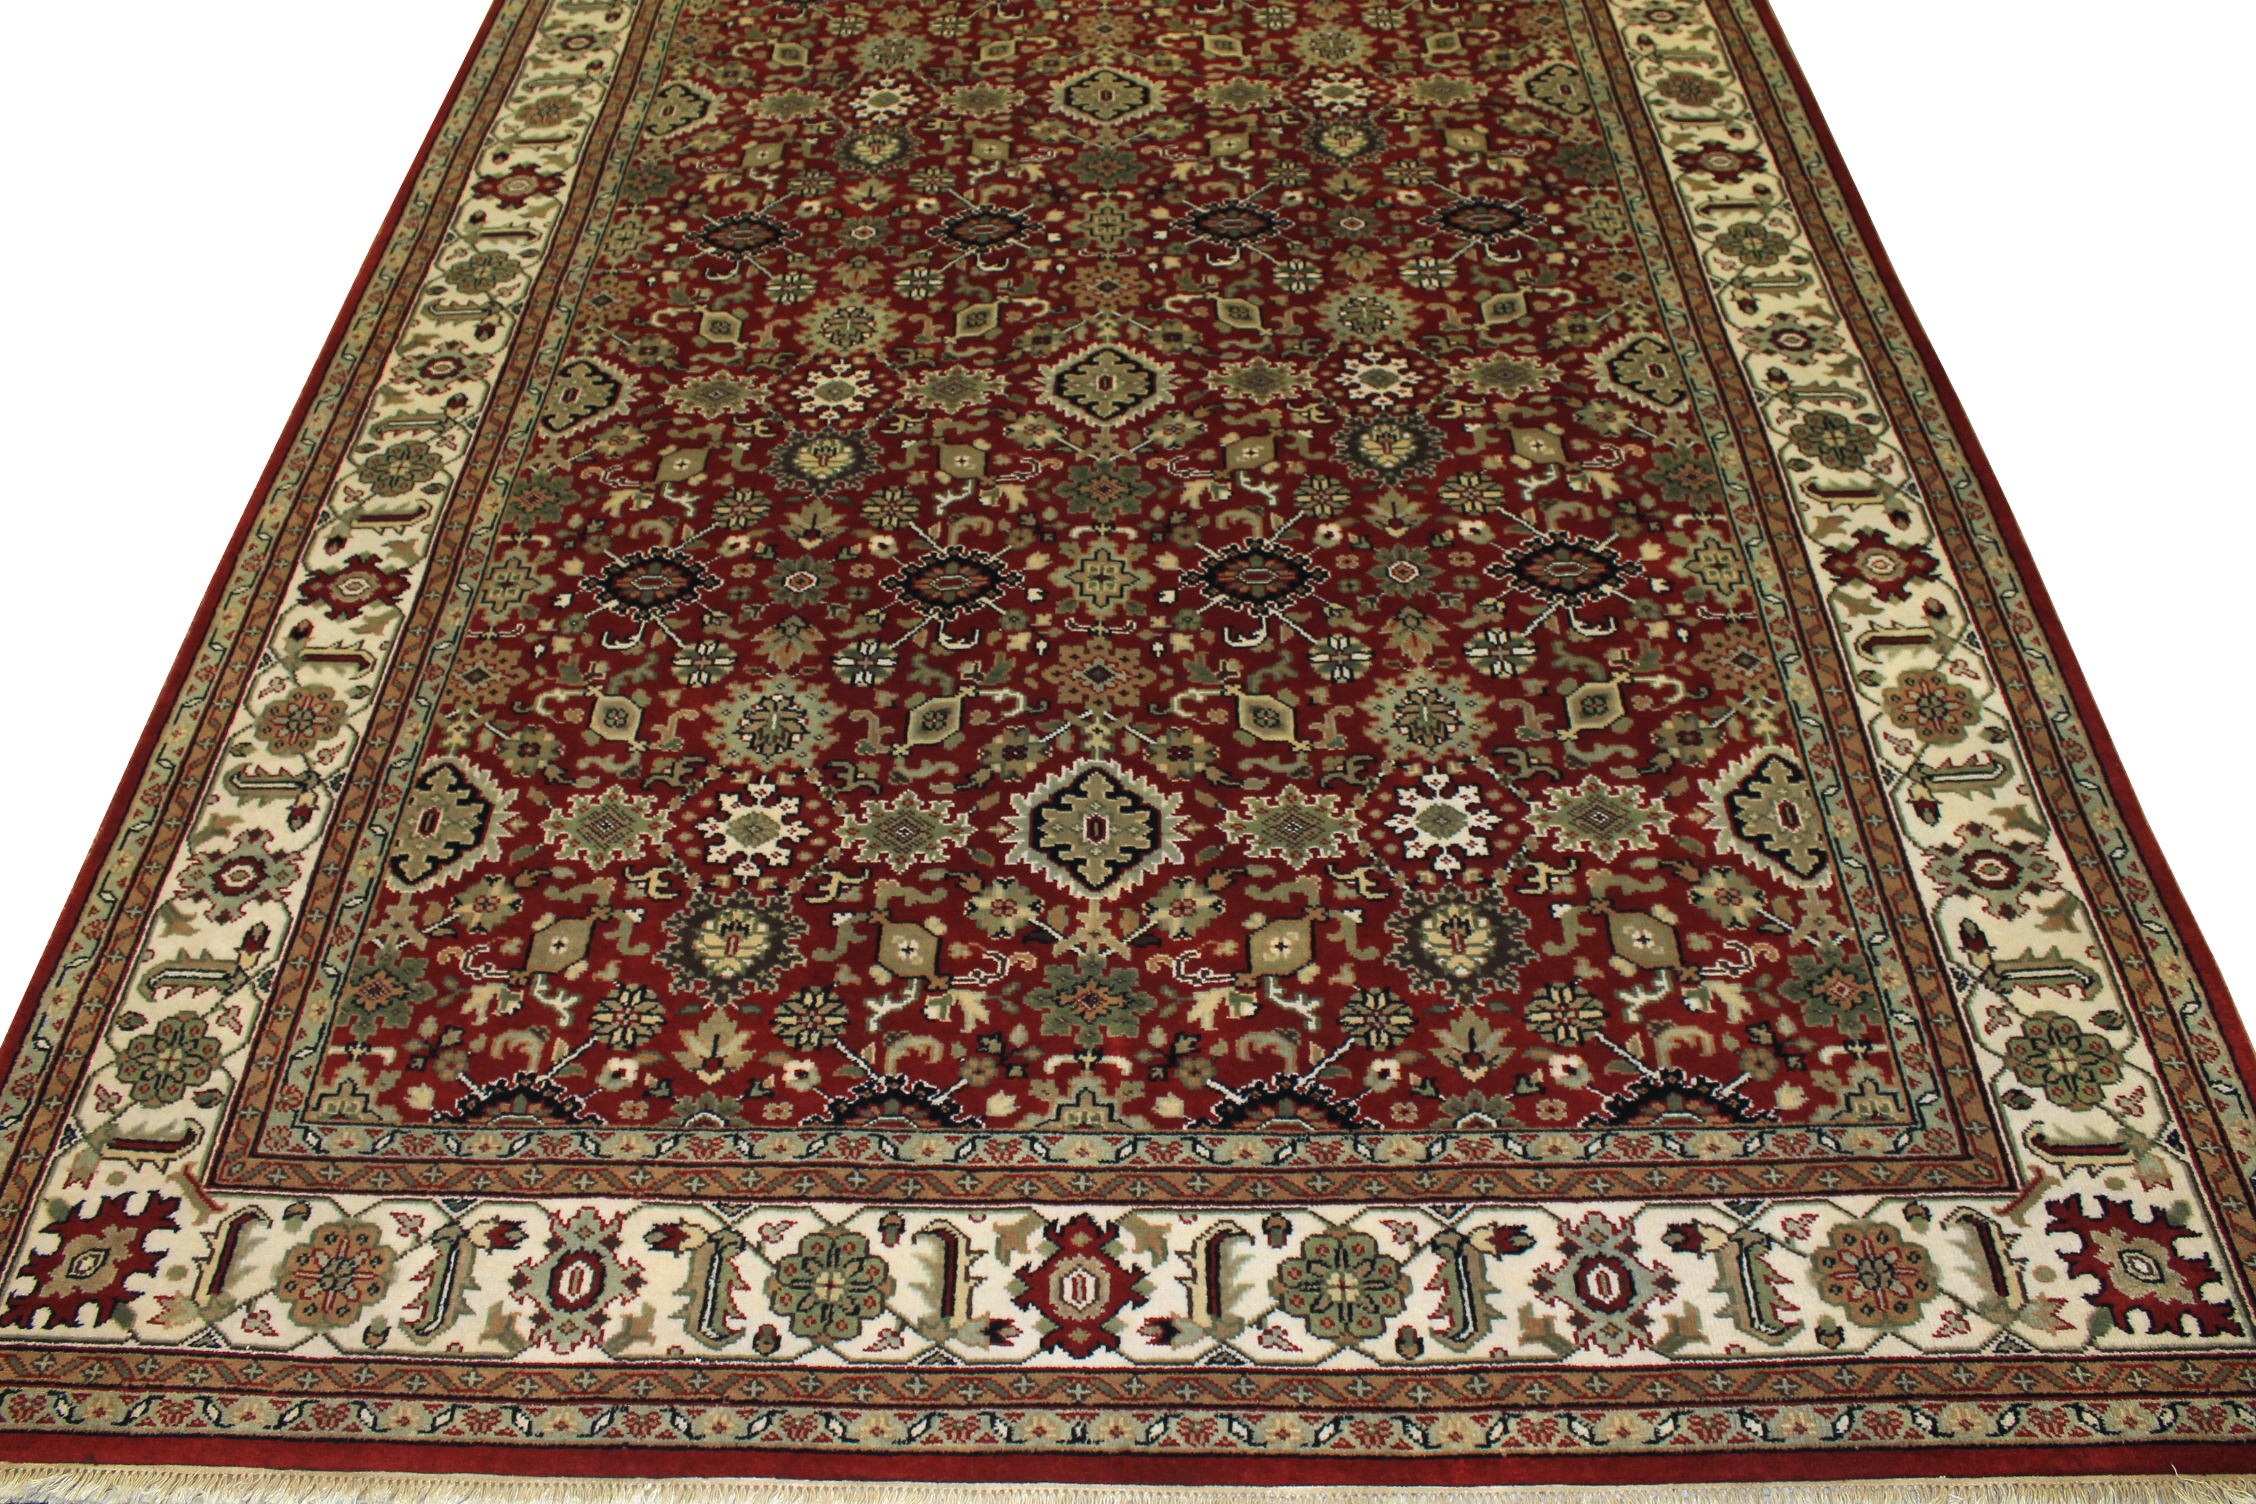 9x12 Traditional Hand Knotted Wool Area Rug - MR15309